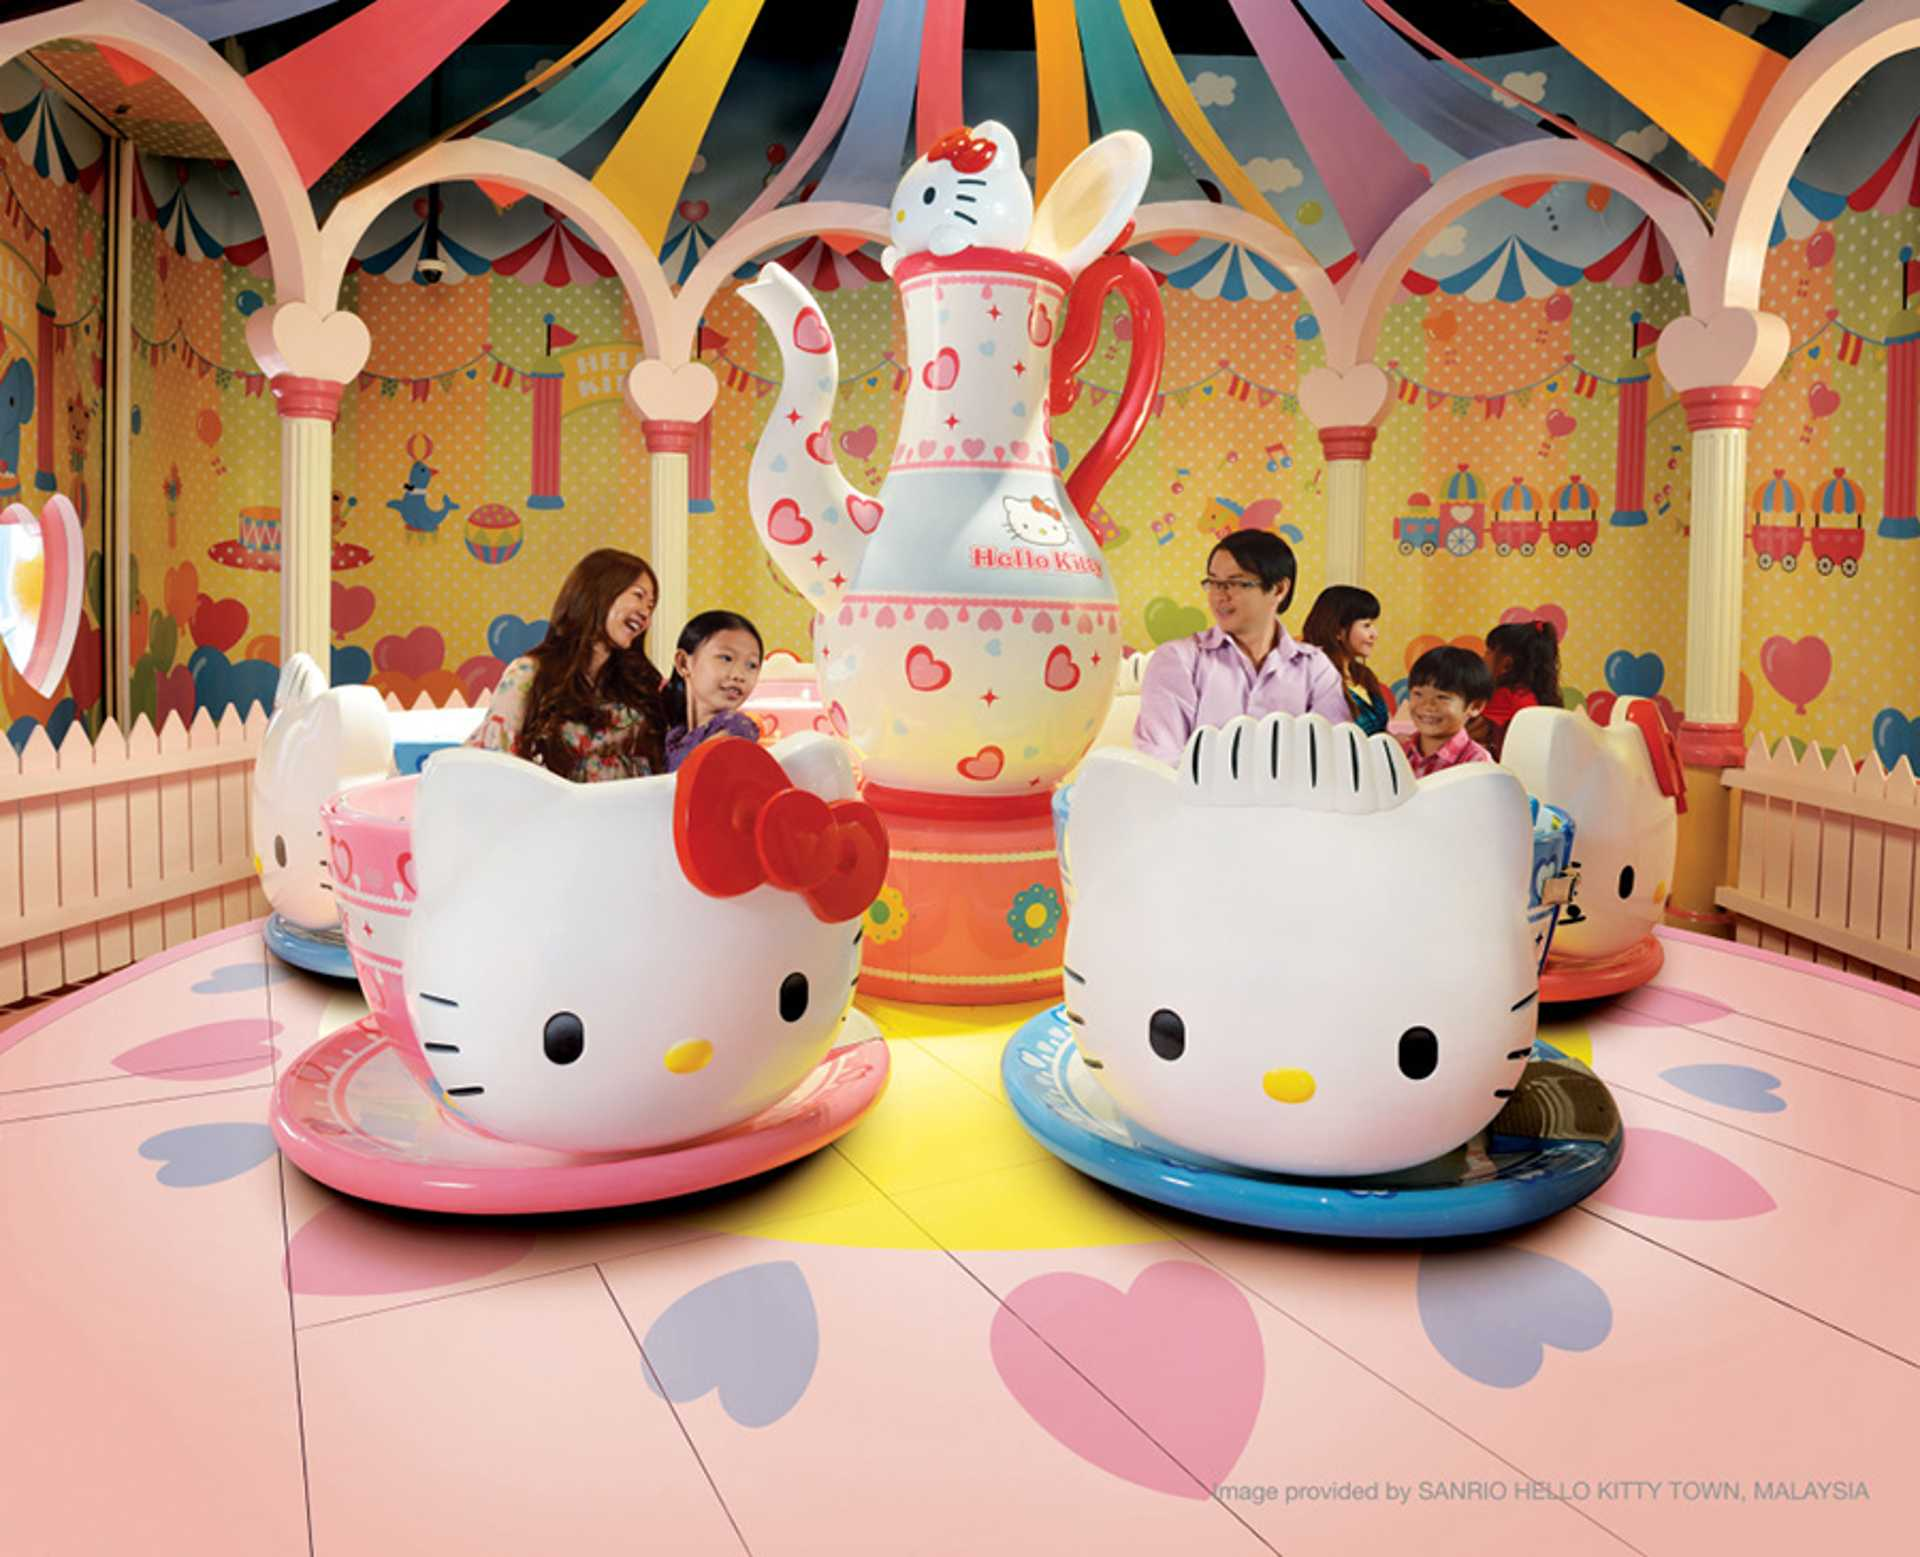 10 - How cute is this Hello Kitty ride